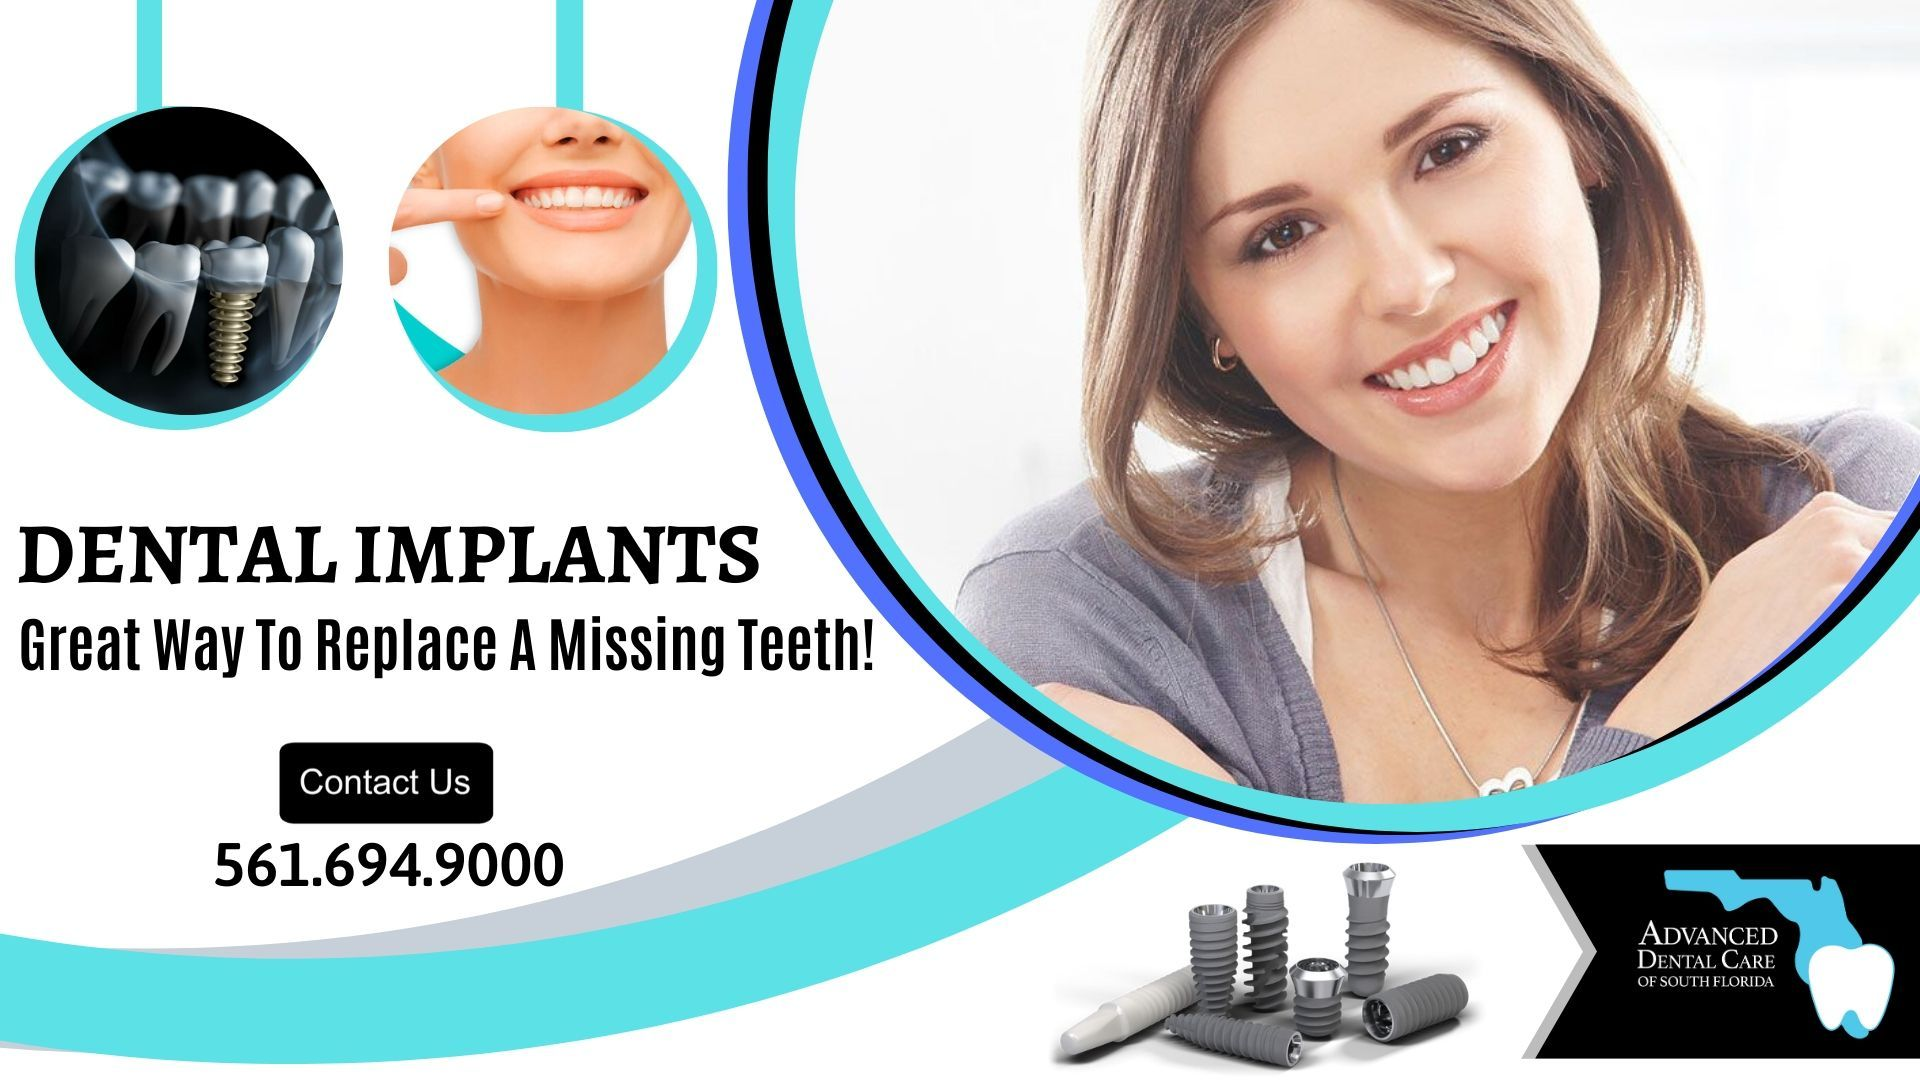 If you are looking for affordable dental implants? Look no